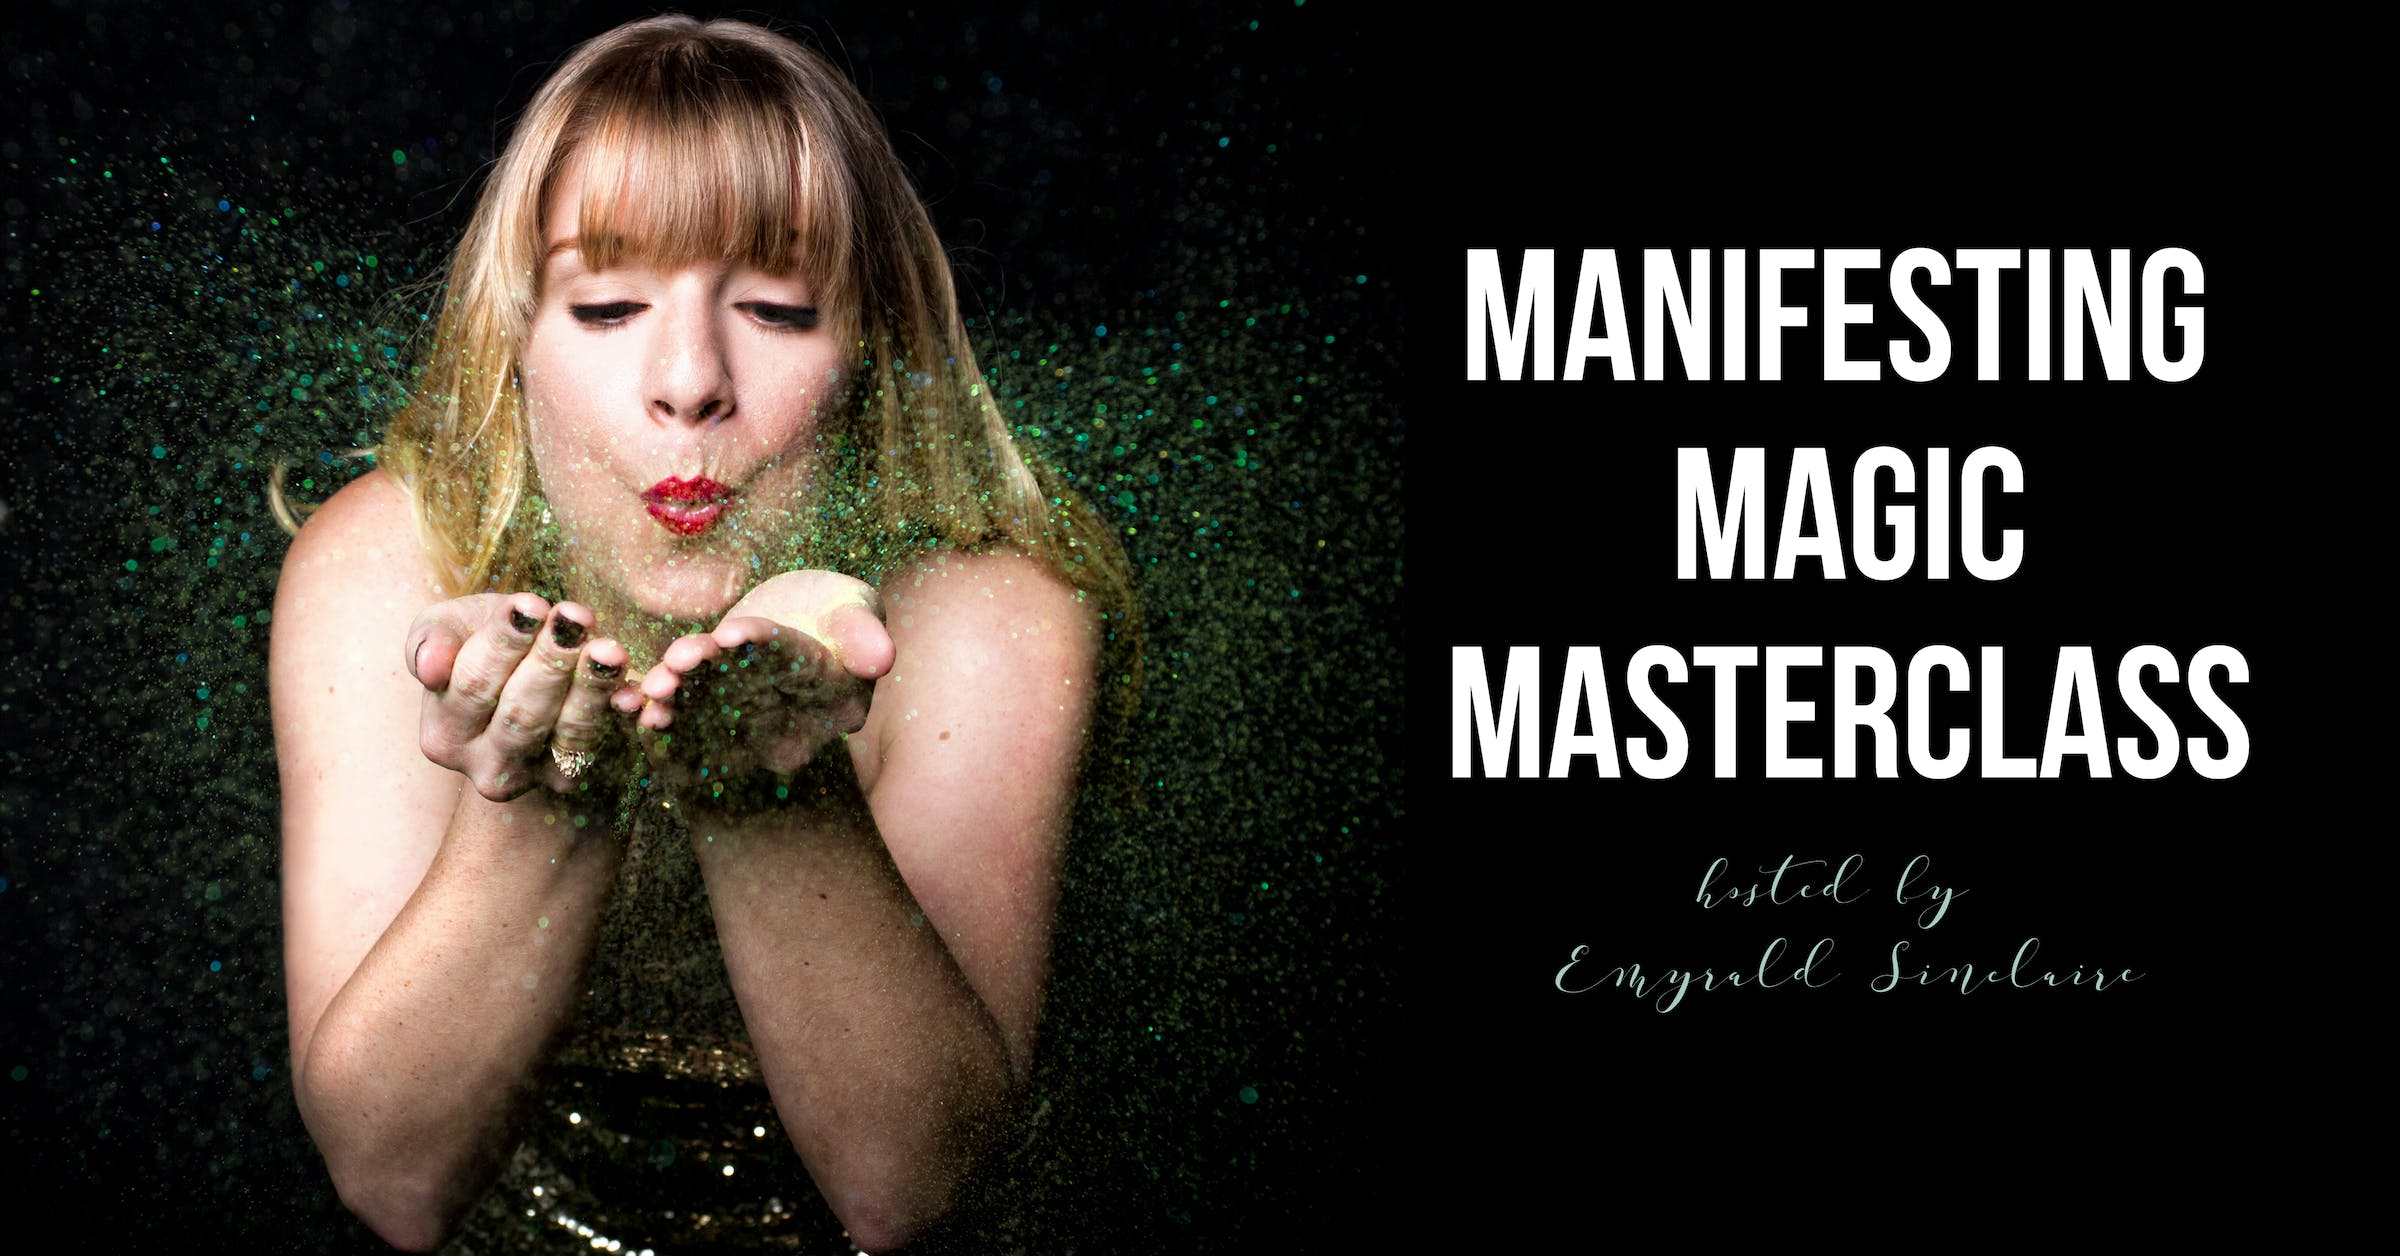 Manifesting Magic Masterclass (LIVE Online Workshop - How To Manifest)